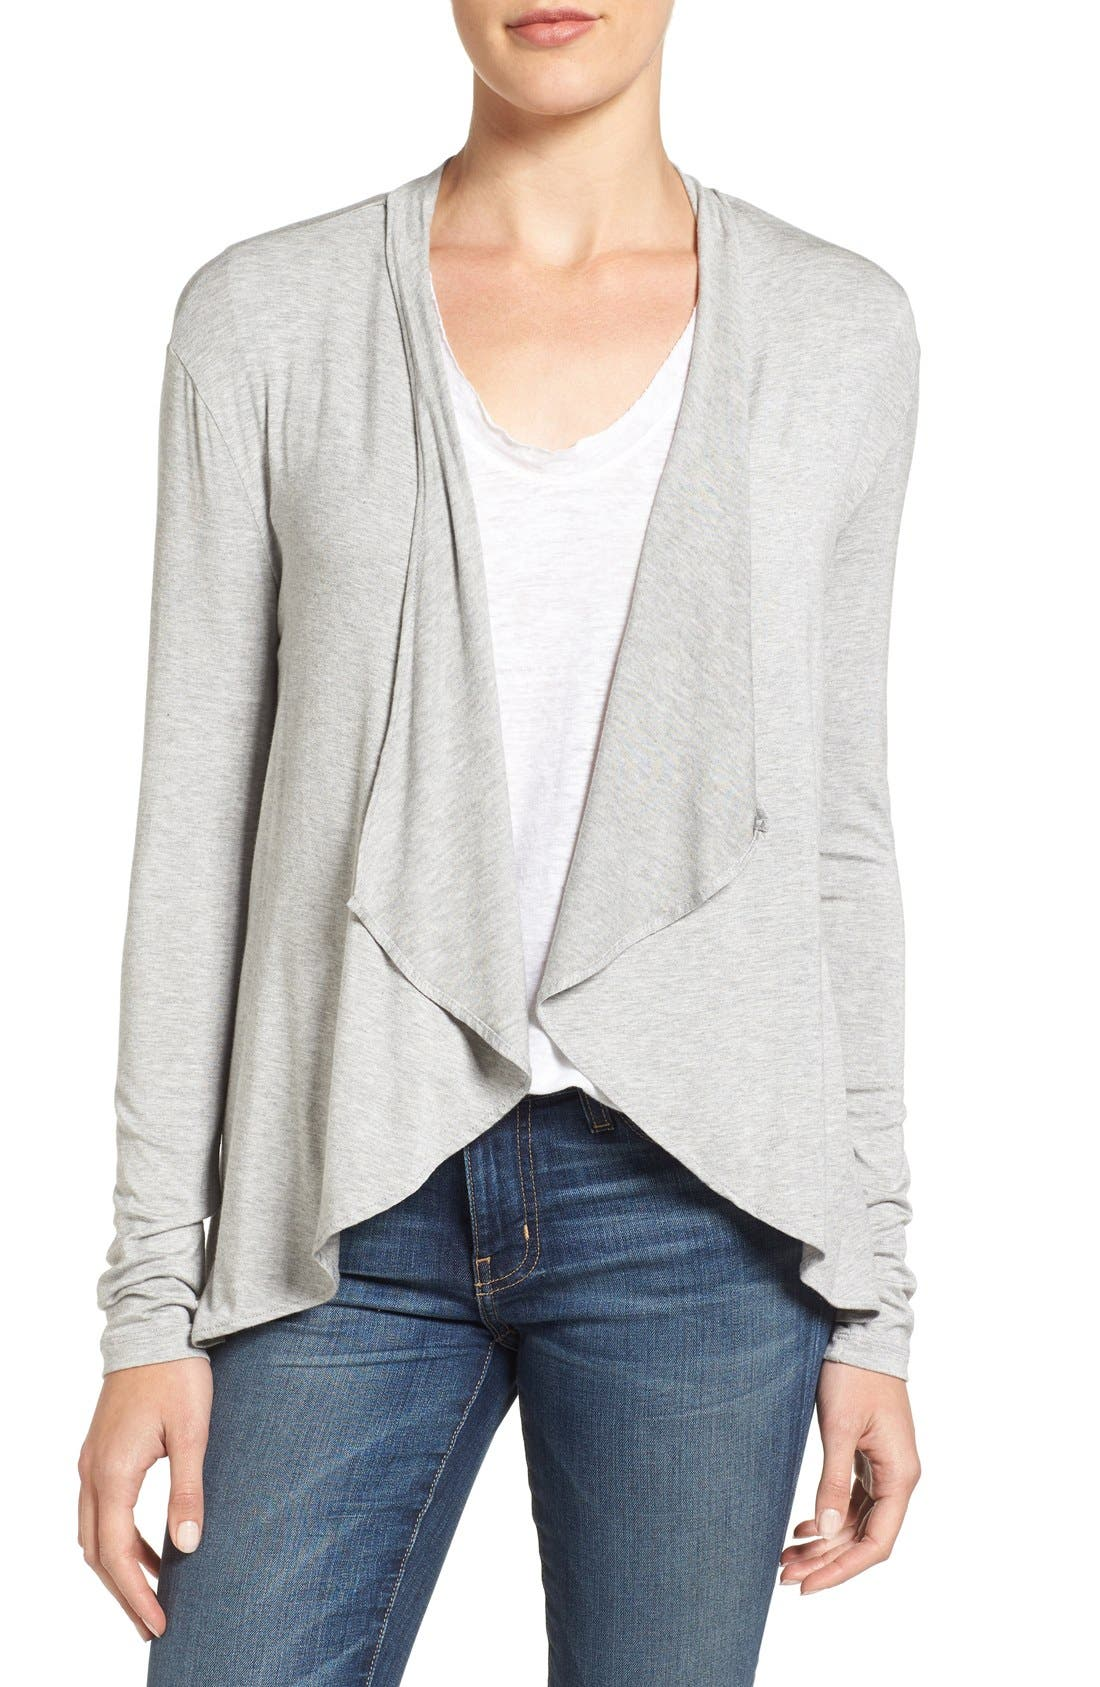 Amour Vert Michaela Stretch Modal Cardigan